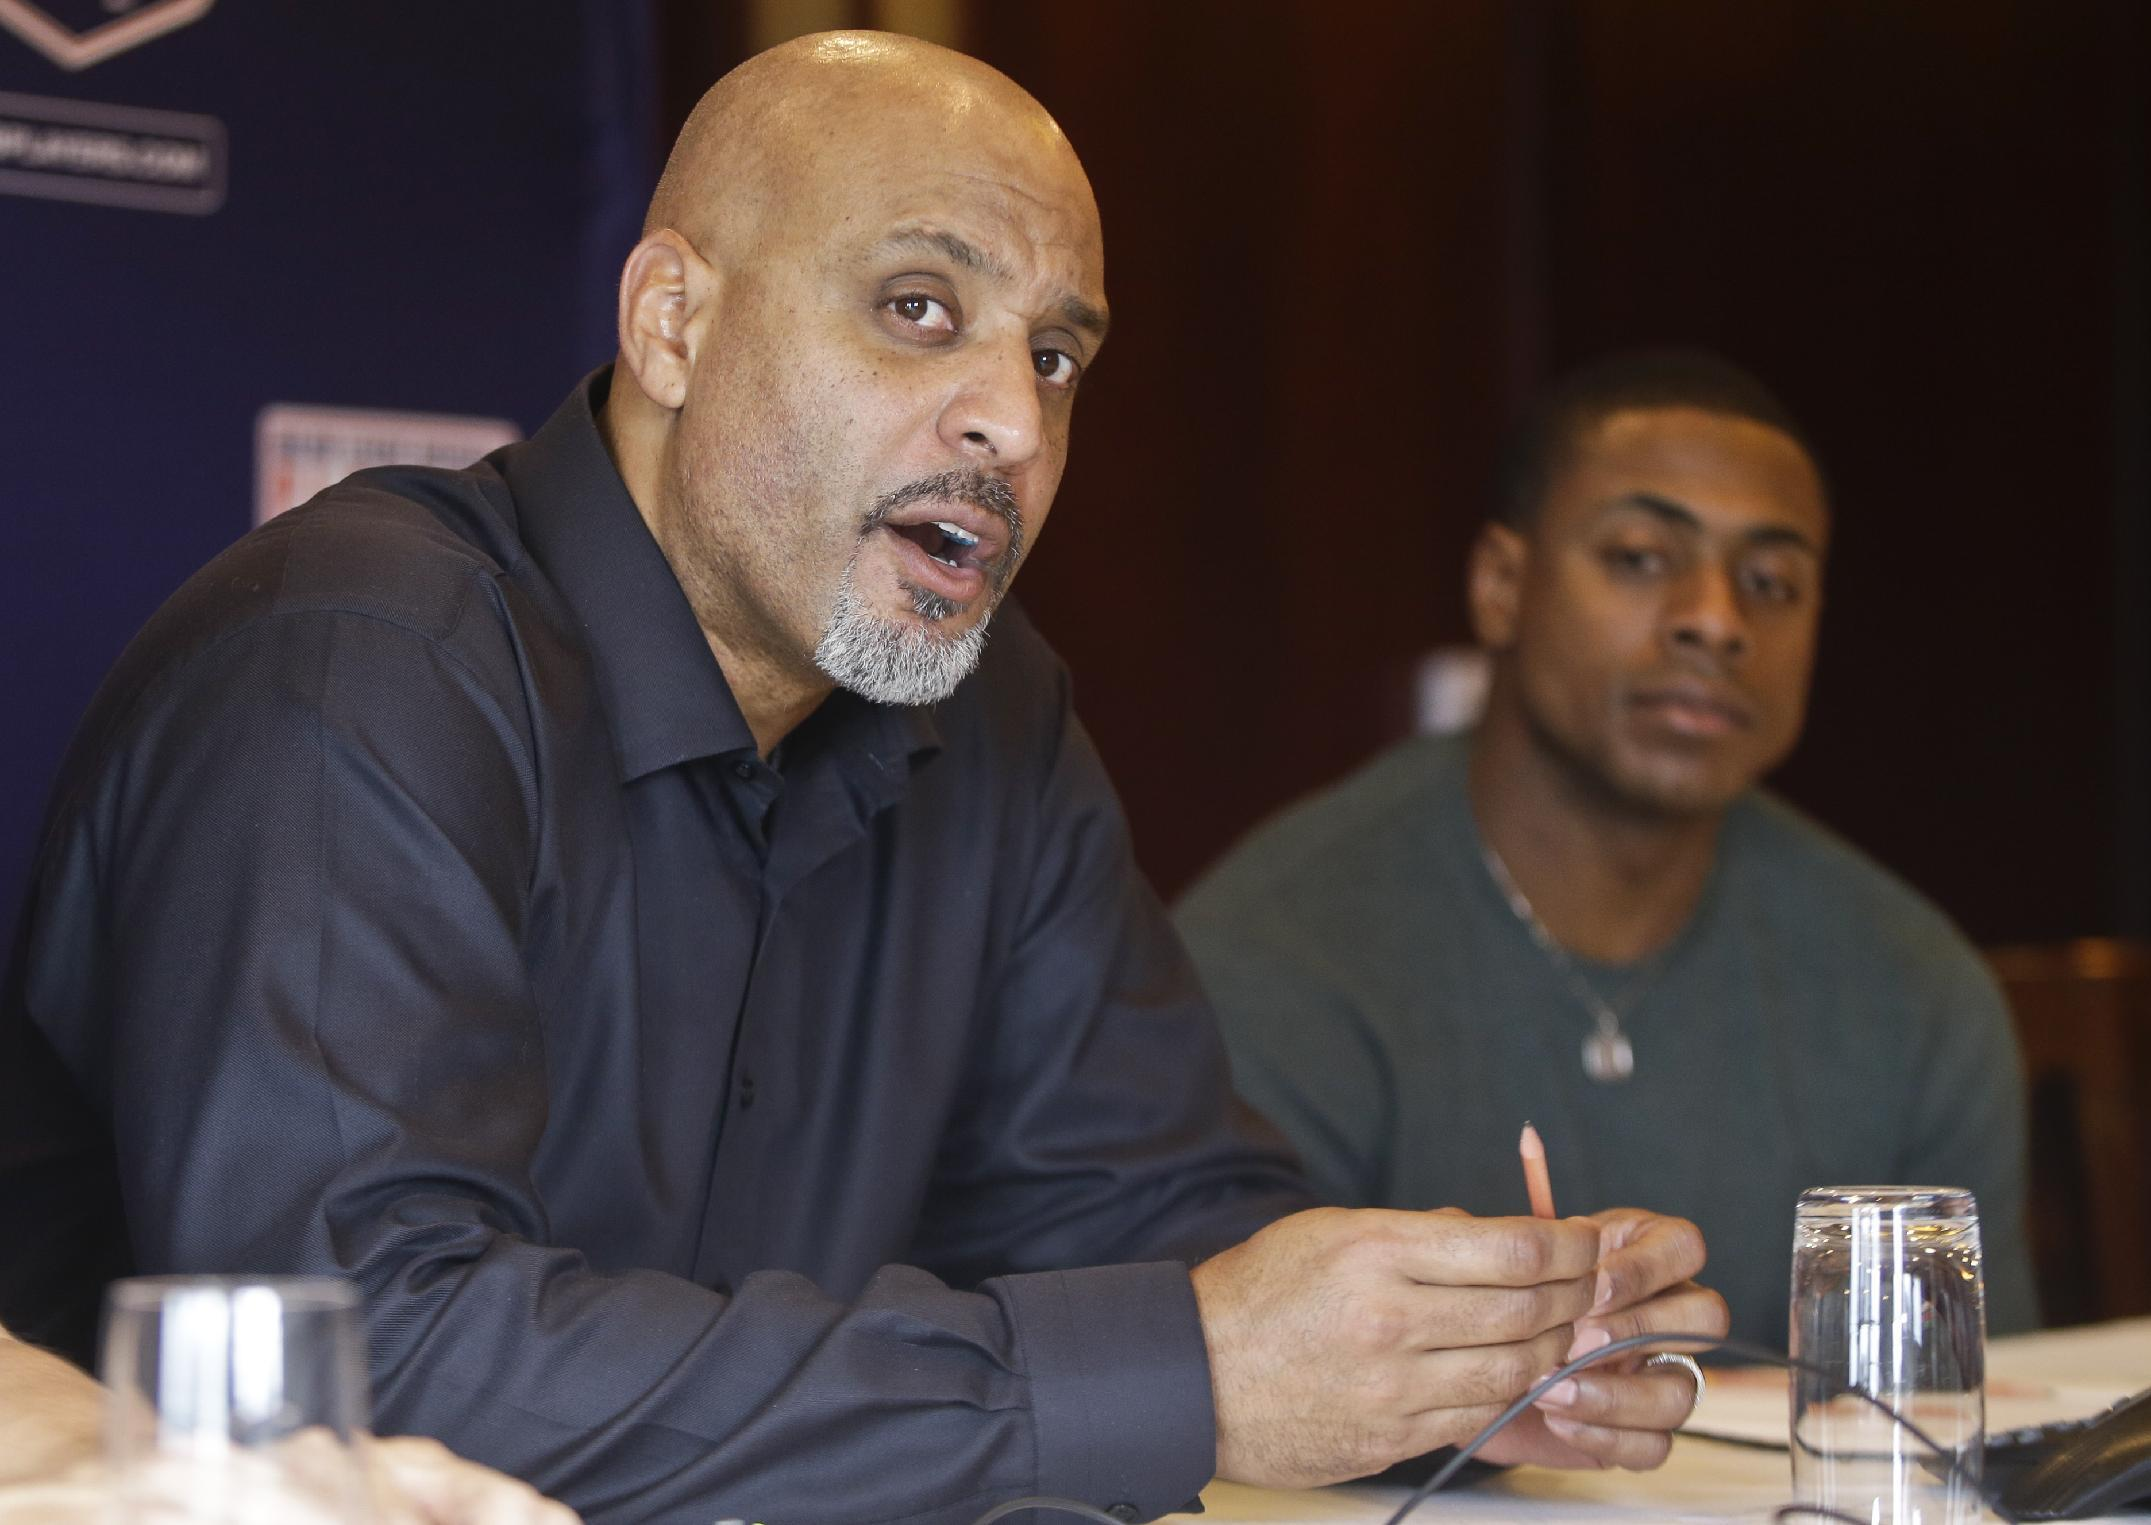 Tony Clark, left, the newly named Executive Director of the Major League Baseball Players Association, answers questions during a news conference at the organizations' annual meeting Tuesday, Dec. 3, 2013, in San Diego. Clark, who replaced the late Michael Weiner, is flanked by executive board member Curtis Granderson. (AP Photo/Lenny Ignelzi)